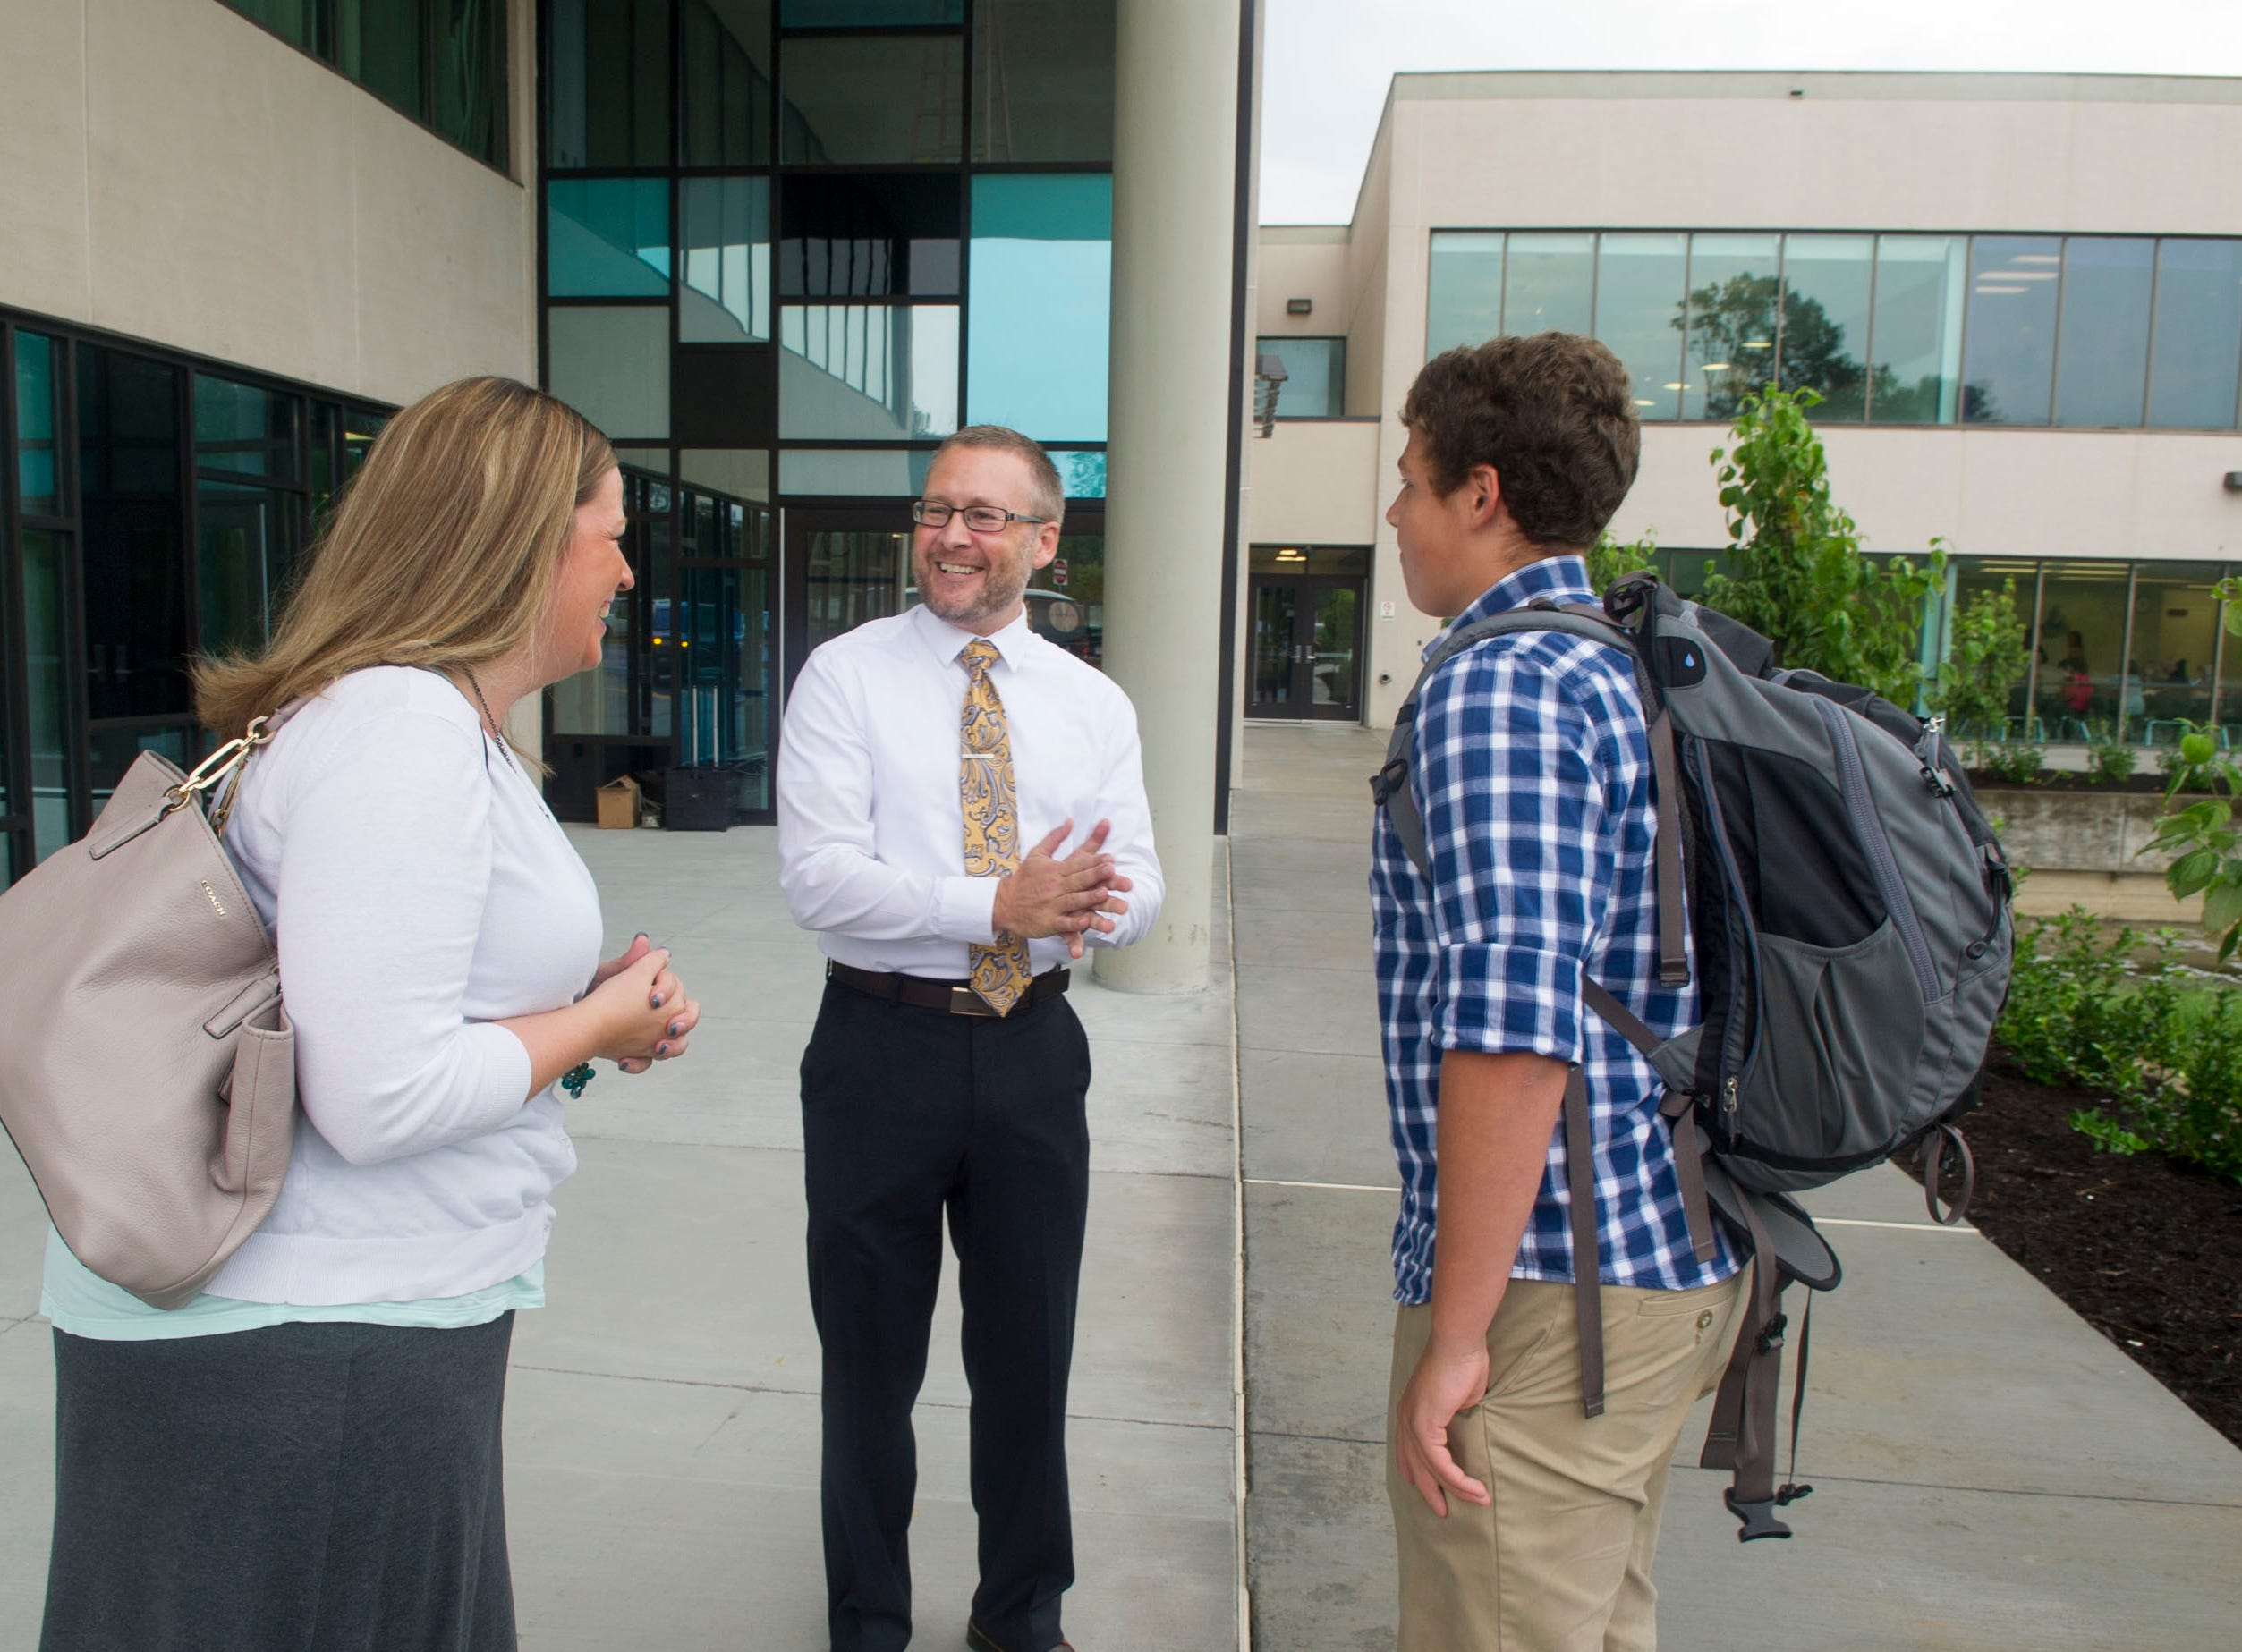 John Derek Faulconer, center, principal of the new Knox County Schools Career Magnet Academy at Pellissippi State, talks with Lea Ann Stanford, left and her son Connor Peak, before the start of orientation, Friday, August 8, 2014.  Knox County Schools opened the Career and Technical Education Magnet high school located on the Pellissippi State Community College campus at Strawberry Plains, Friday, August 8, 2014.  The opening comes on the heels of a state and national push toward increasing these type of programs for students. The new CTE magnet high school, a partnership with Pellissippi State Community College and the Knoxville Chamber, as well as academic and business leaders, will offer students courses in advanced manufacturing, sustainable living, homeland security and teacher preparation. Students were on campus for freshman orientation.  John Faulconer is the principal of the new high school.